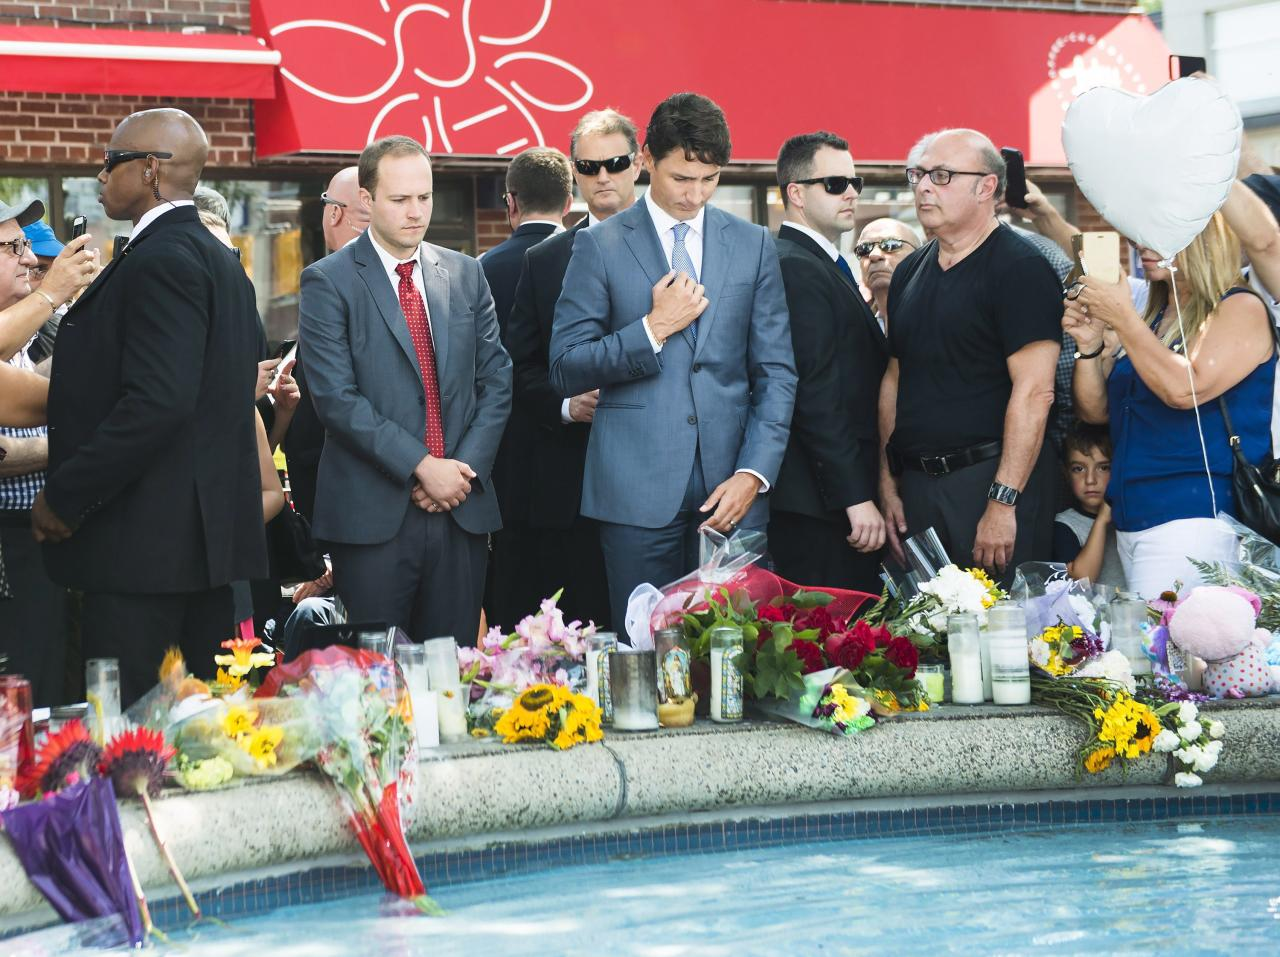 <p>Prime Minister Justin Trudeau pays his respects after placing flowers at the fountain at the Alexander the Great Parkette, near where people were gunned down and injured from the recent Danforth shootings in Toronto on Monday, July 30, 2018. Photo from The Canadian Press. </p>